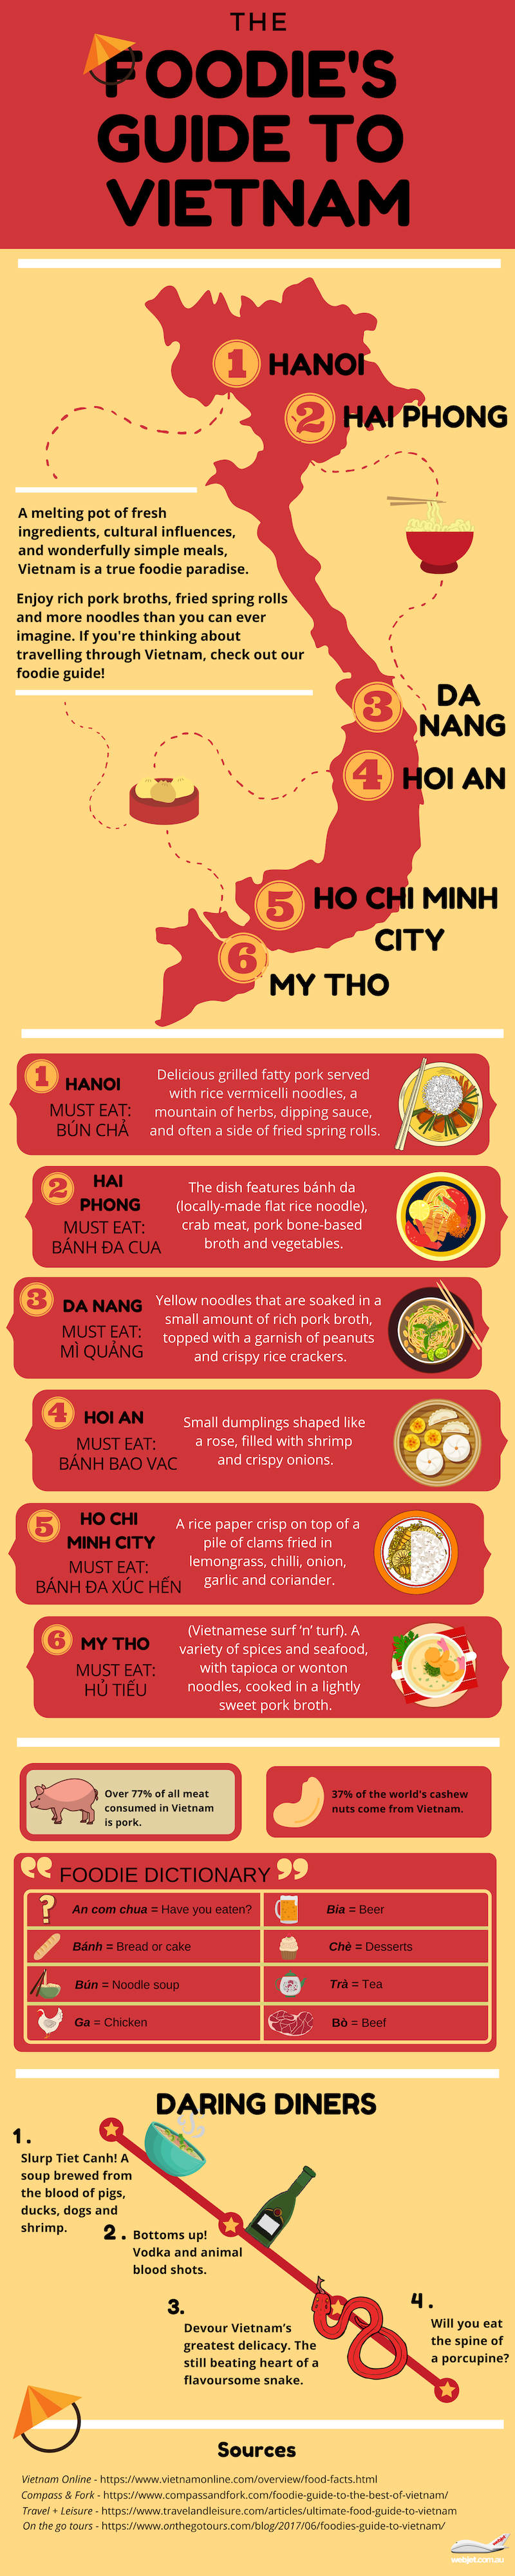 The-Foodies-Guide-To-Vietnam-infographic-plaza